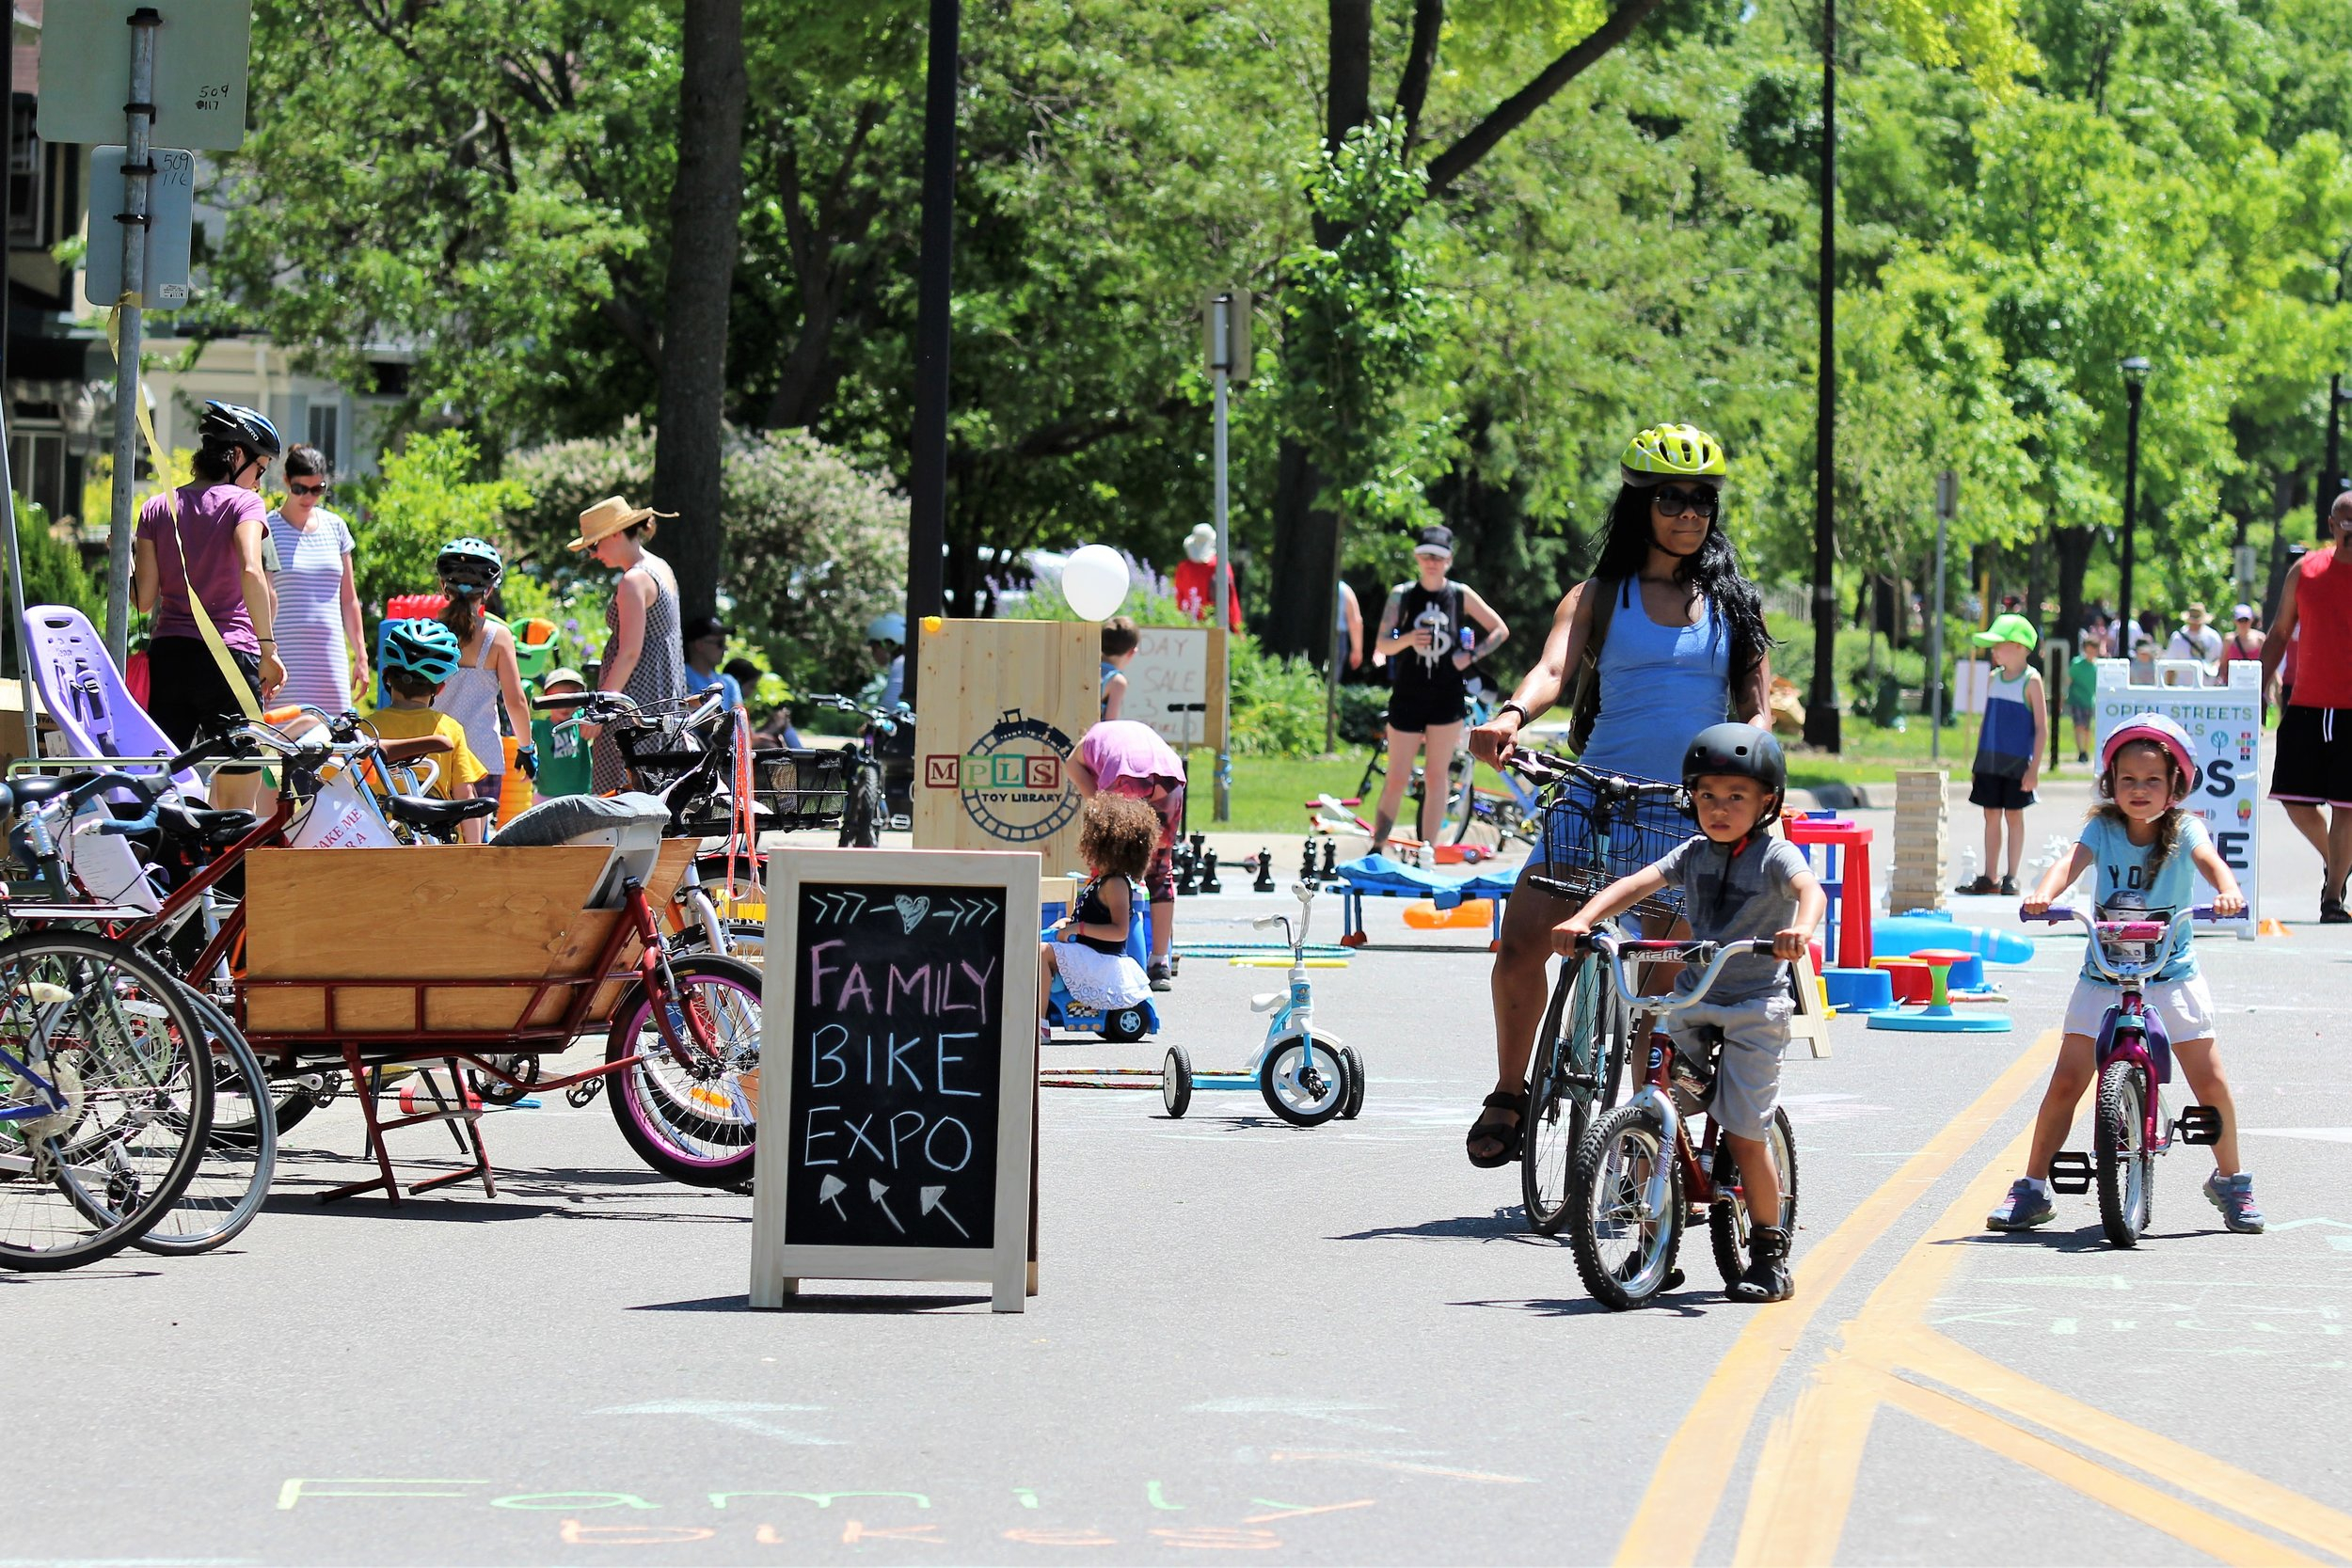 COLORADO CLASSIC OPEN STREETS - Come have fun in a FAMILY FRIENDLY environment!Sunday August 25th10:45 AM to 12:30PM - Open to all10:30AM- Special Kids and families ride, Enter from 22nd and BlakeStay to watch the Pro Women take to the streets of Denver at 1:30!